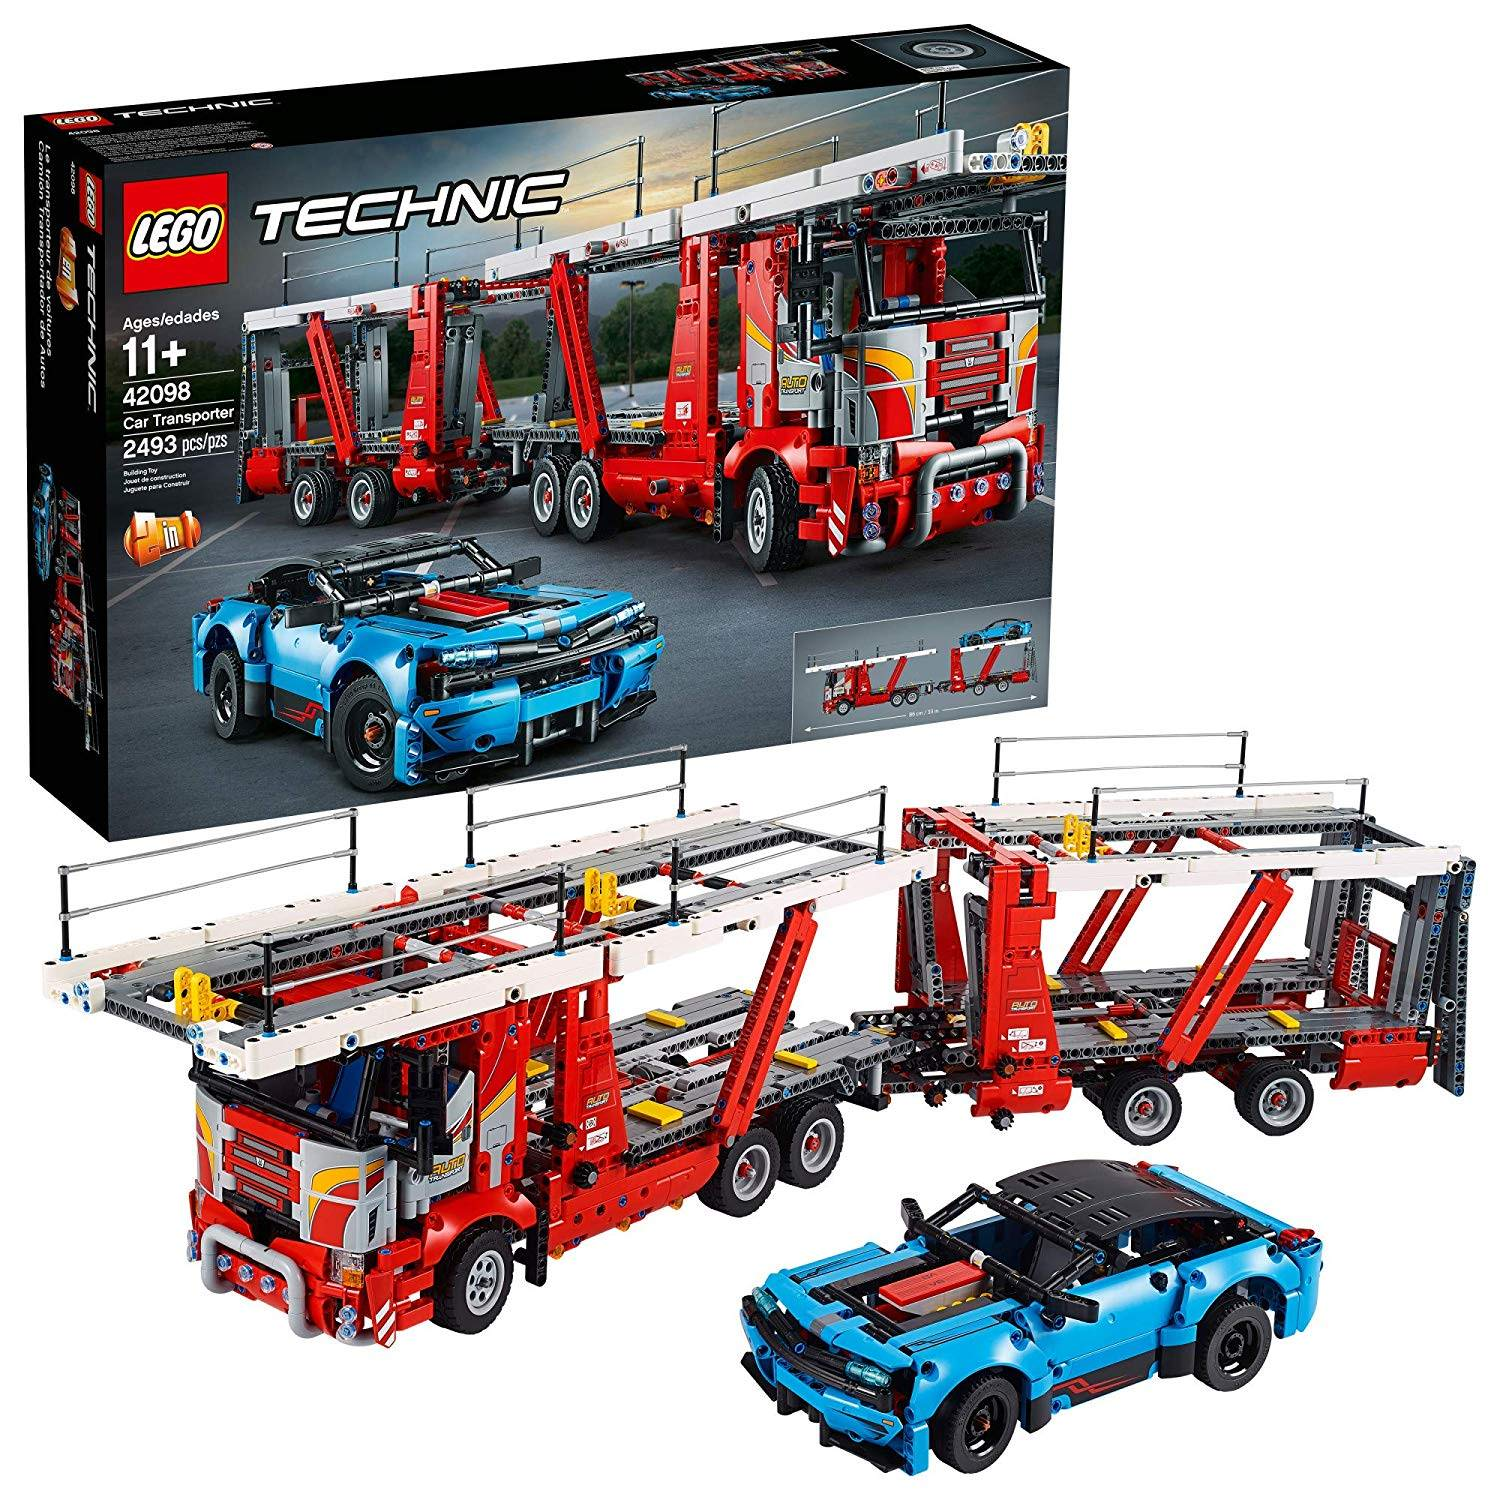 LEGO 42098: Car Transporter